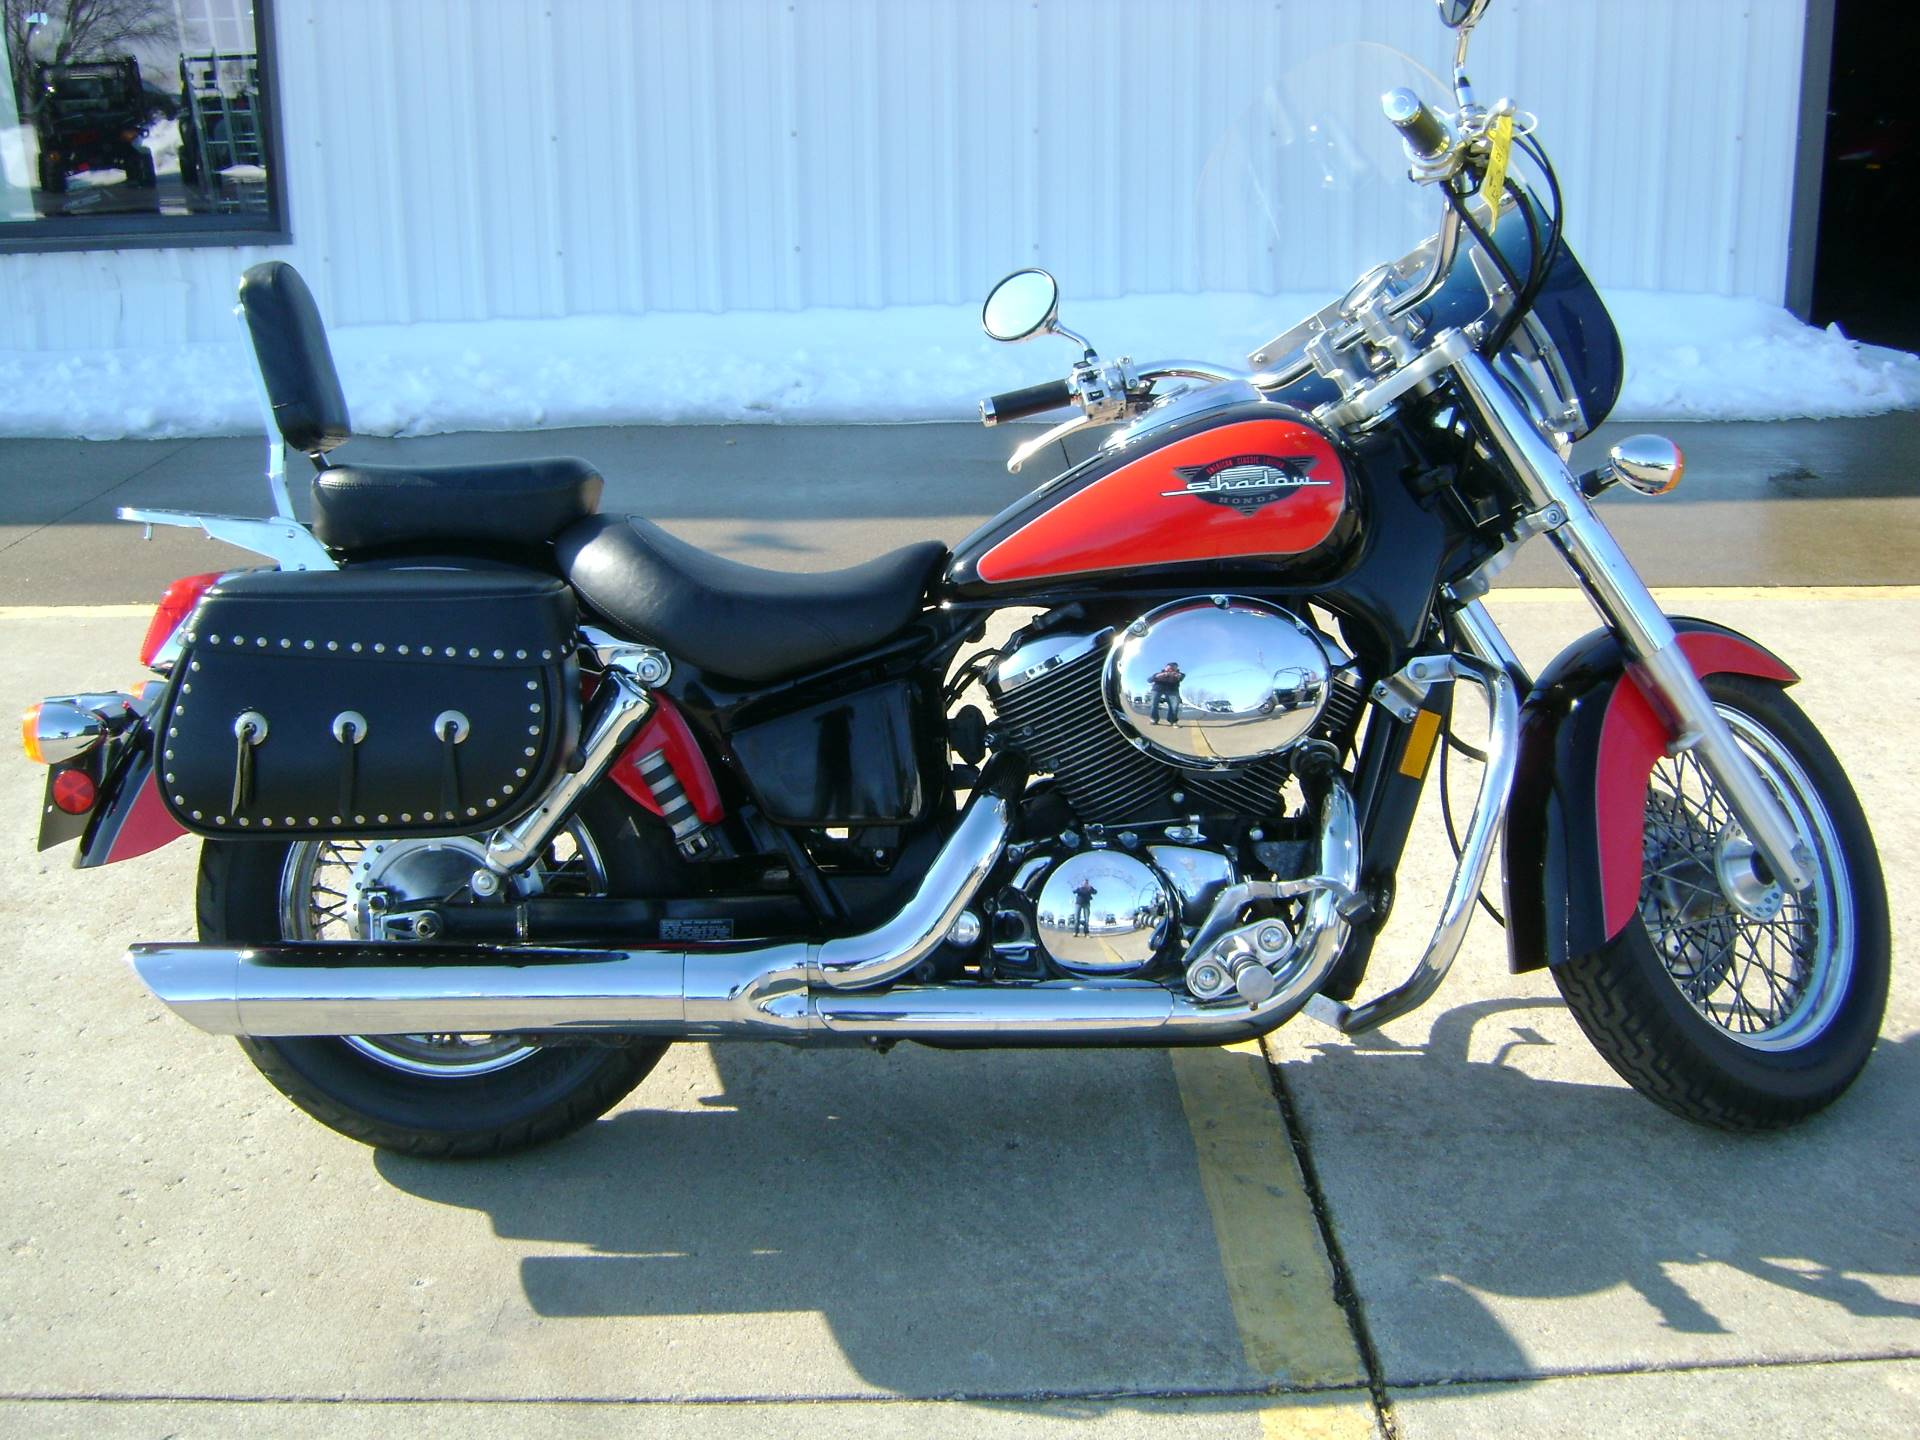 Used 2000 Honda Shadow Ace Deluxe 750 Motorcycles In Freeport Il